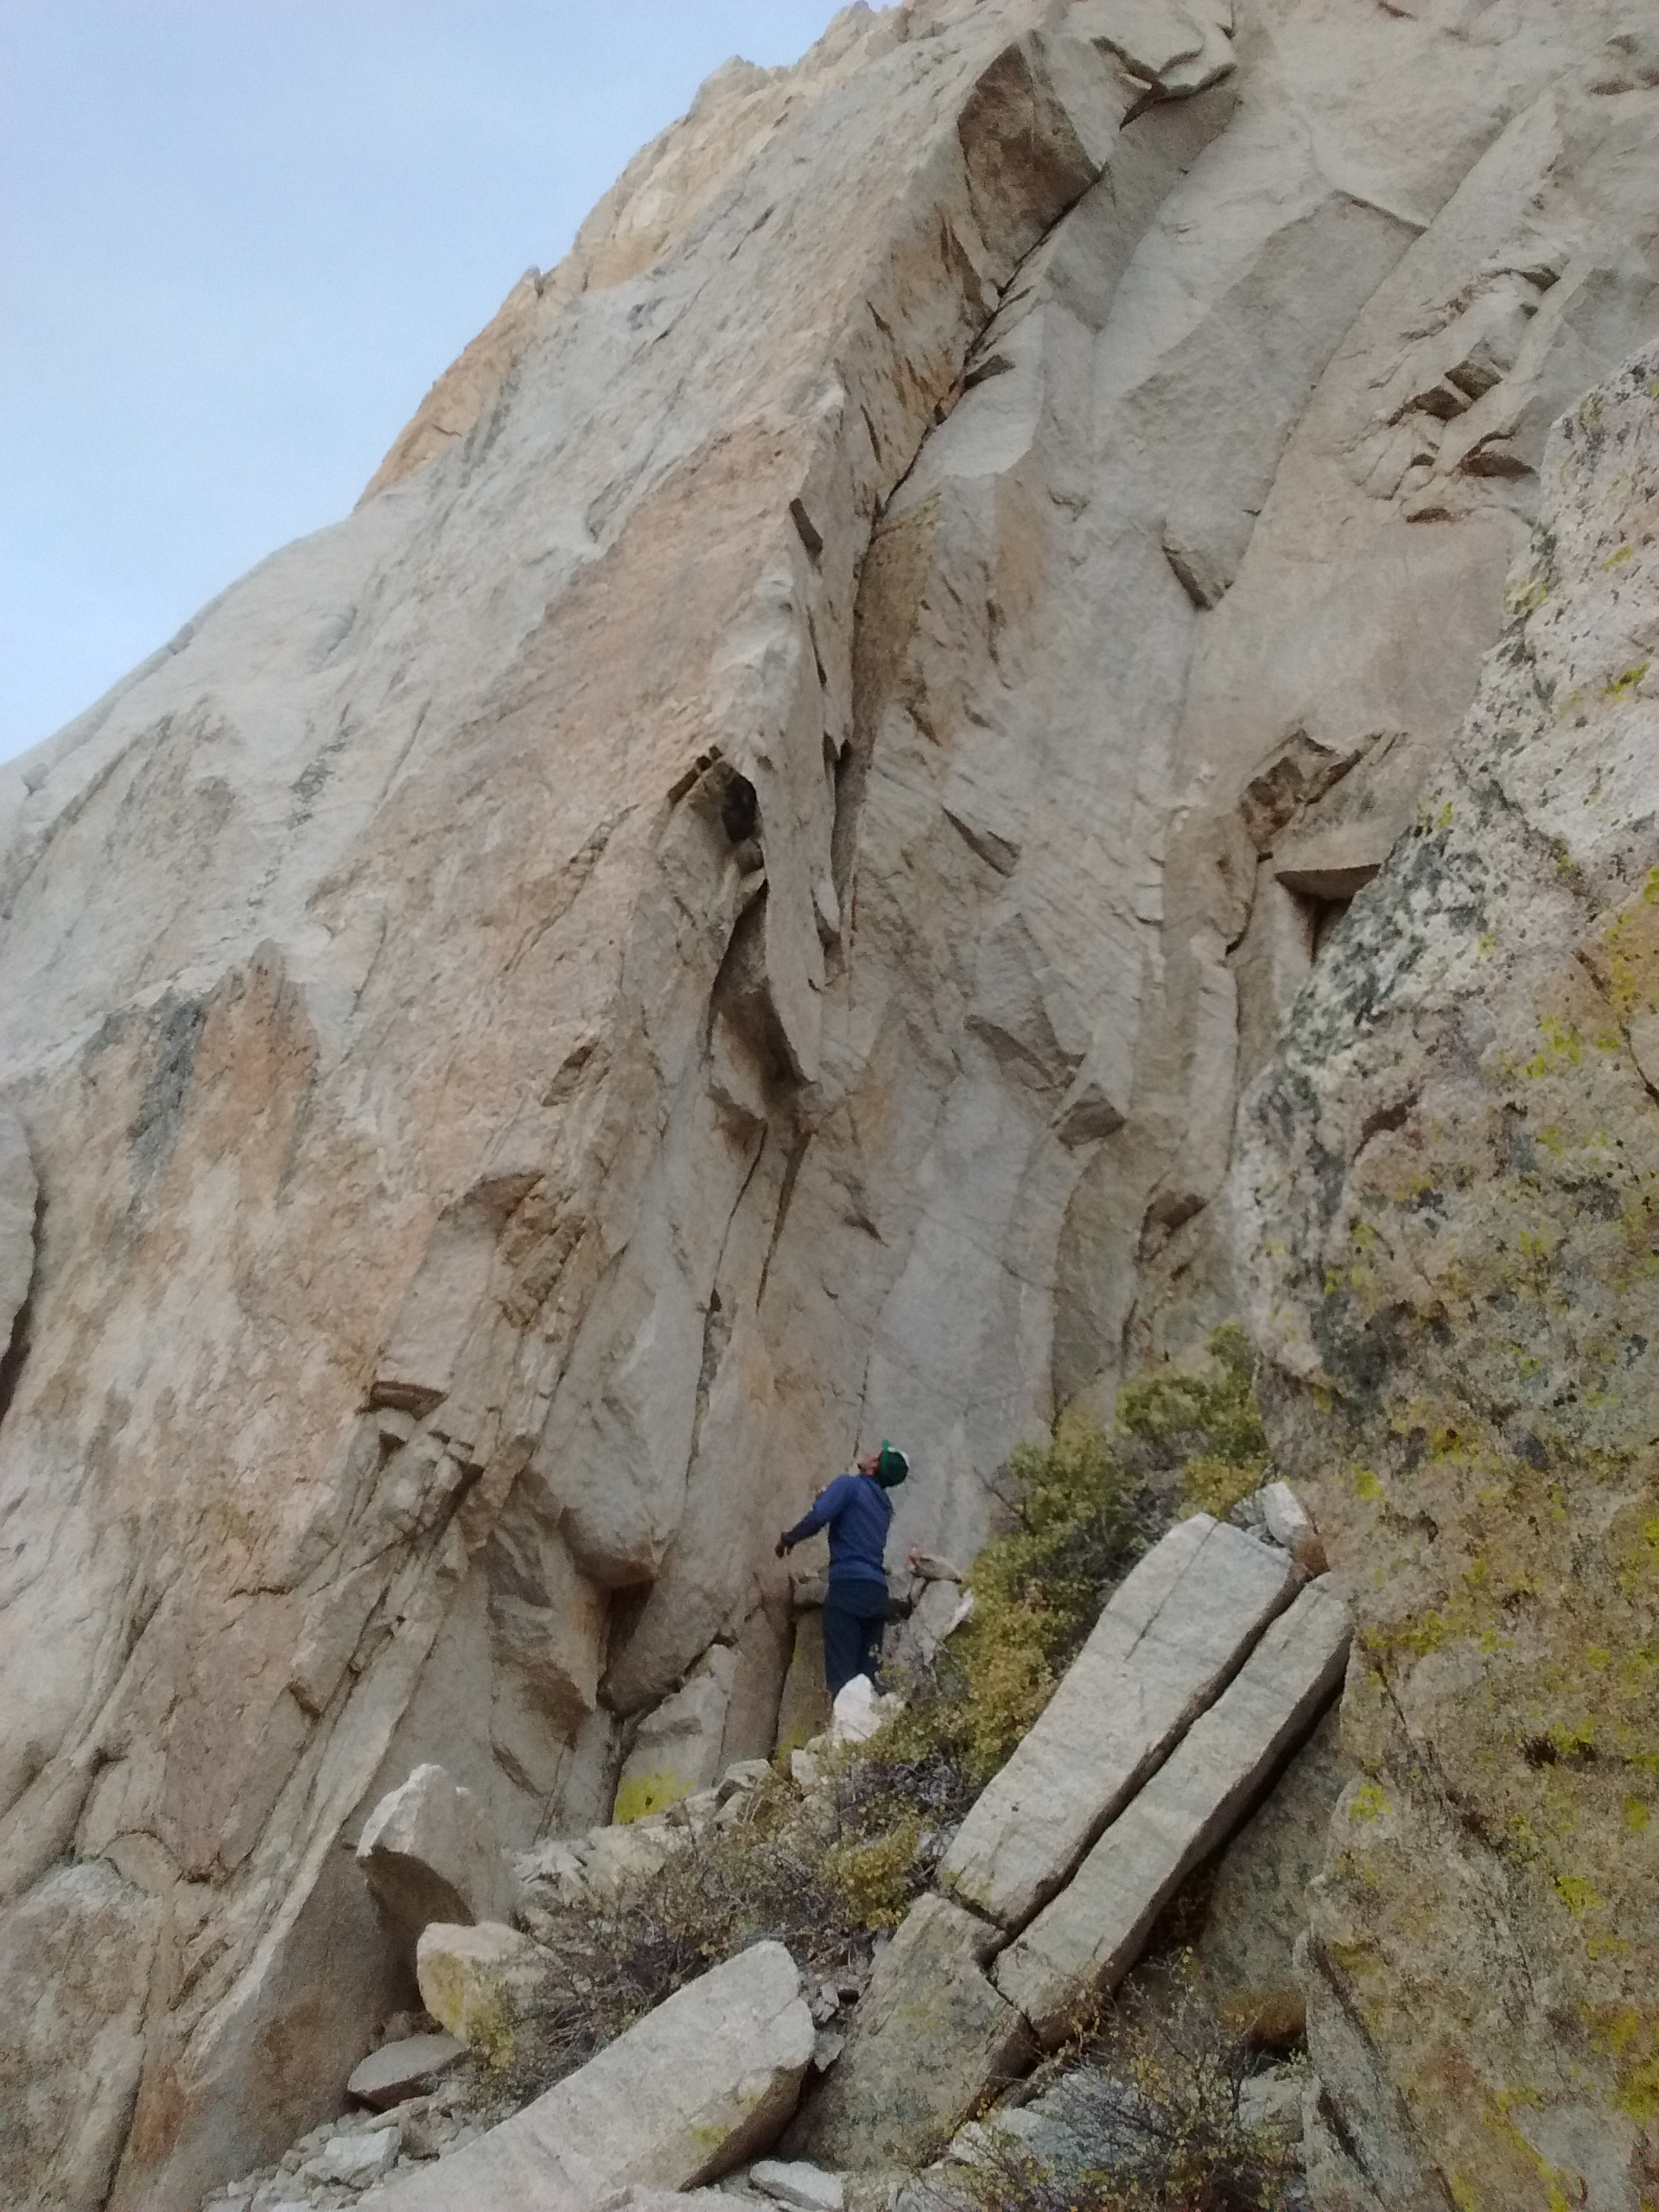 Looking up the first pitch of Causative Striations.